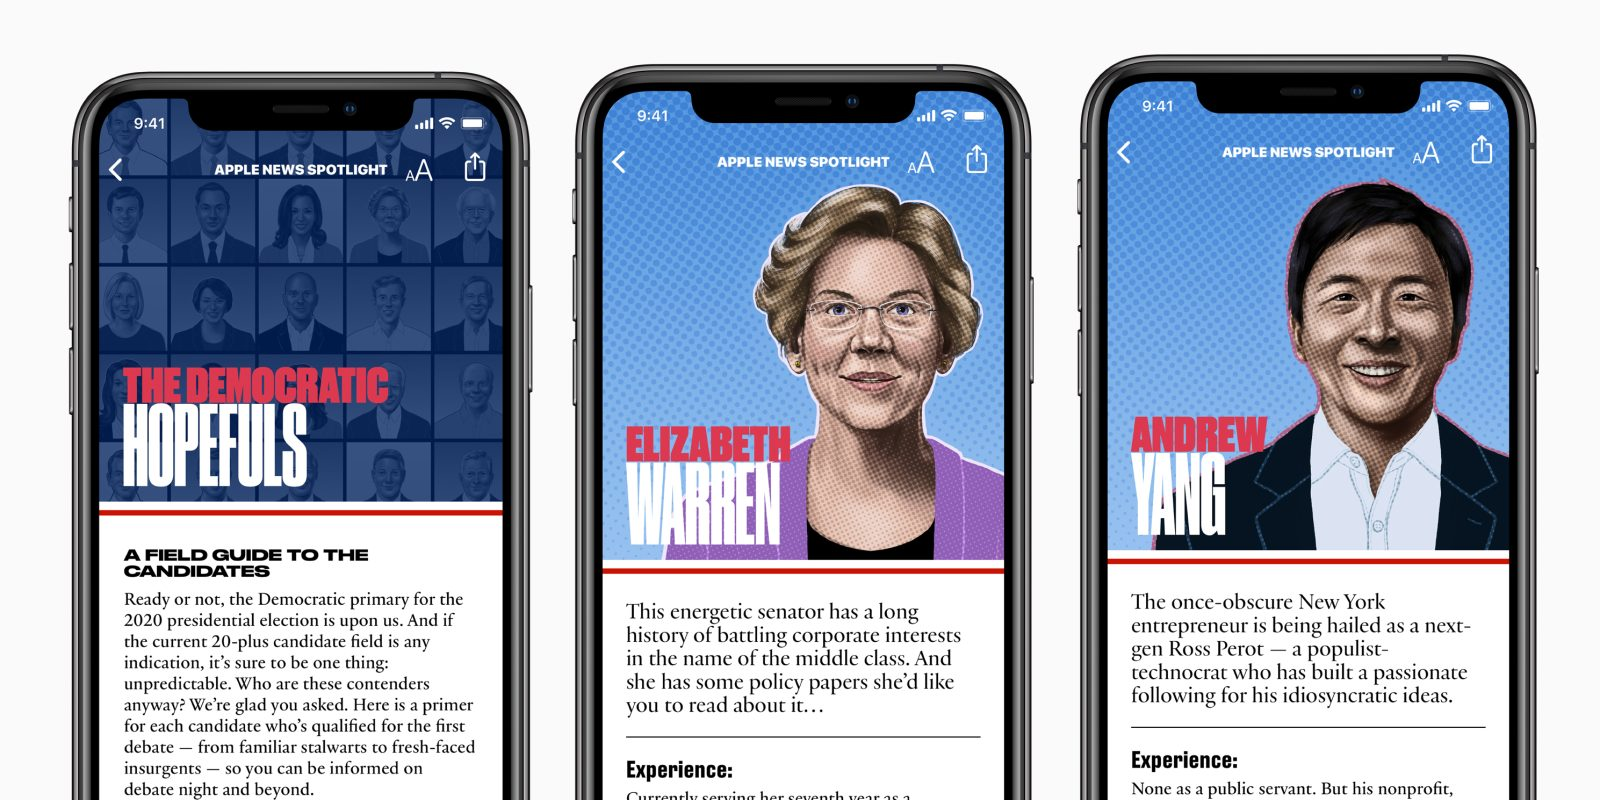 Apple News launches Democratic candidate guide for the 2020 presidential campaign